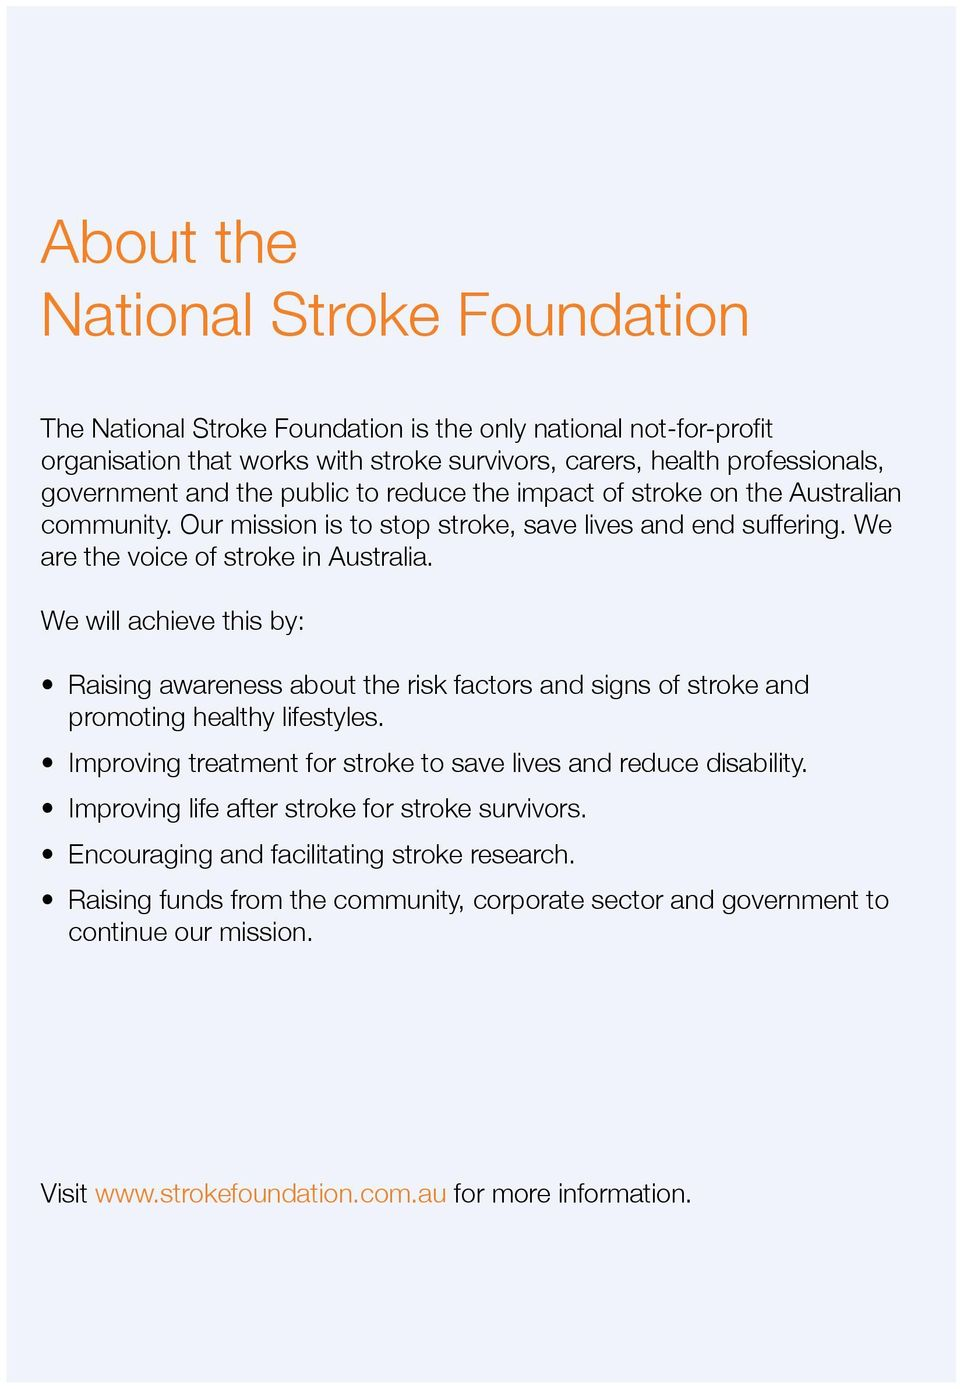 We will achieve this by: Raising awareness about the risk factors and signs of stroke and promoting healthy lifestyles. Improving treatment for stroke to save lives and reduce disability.